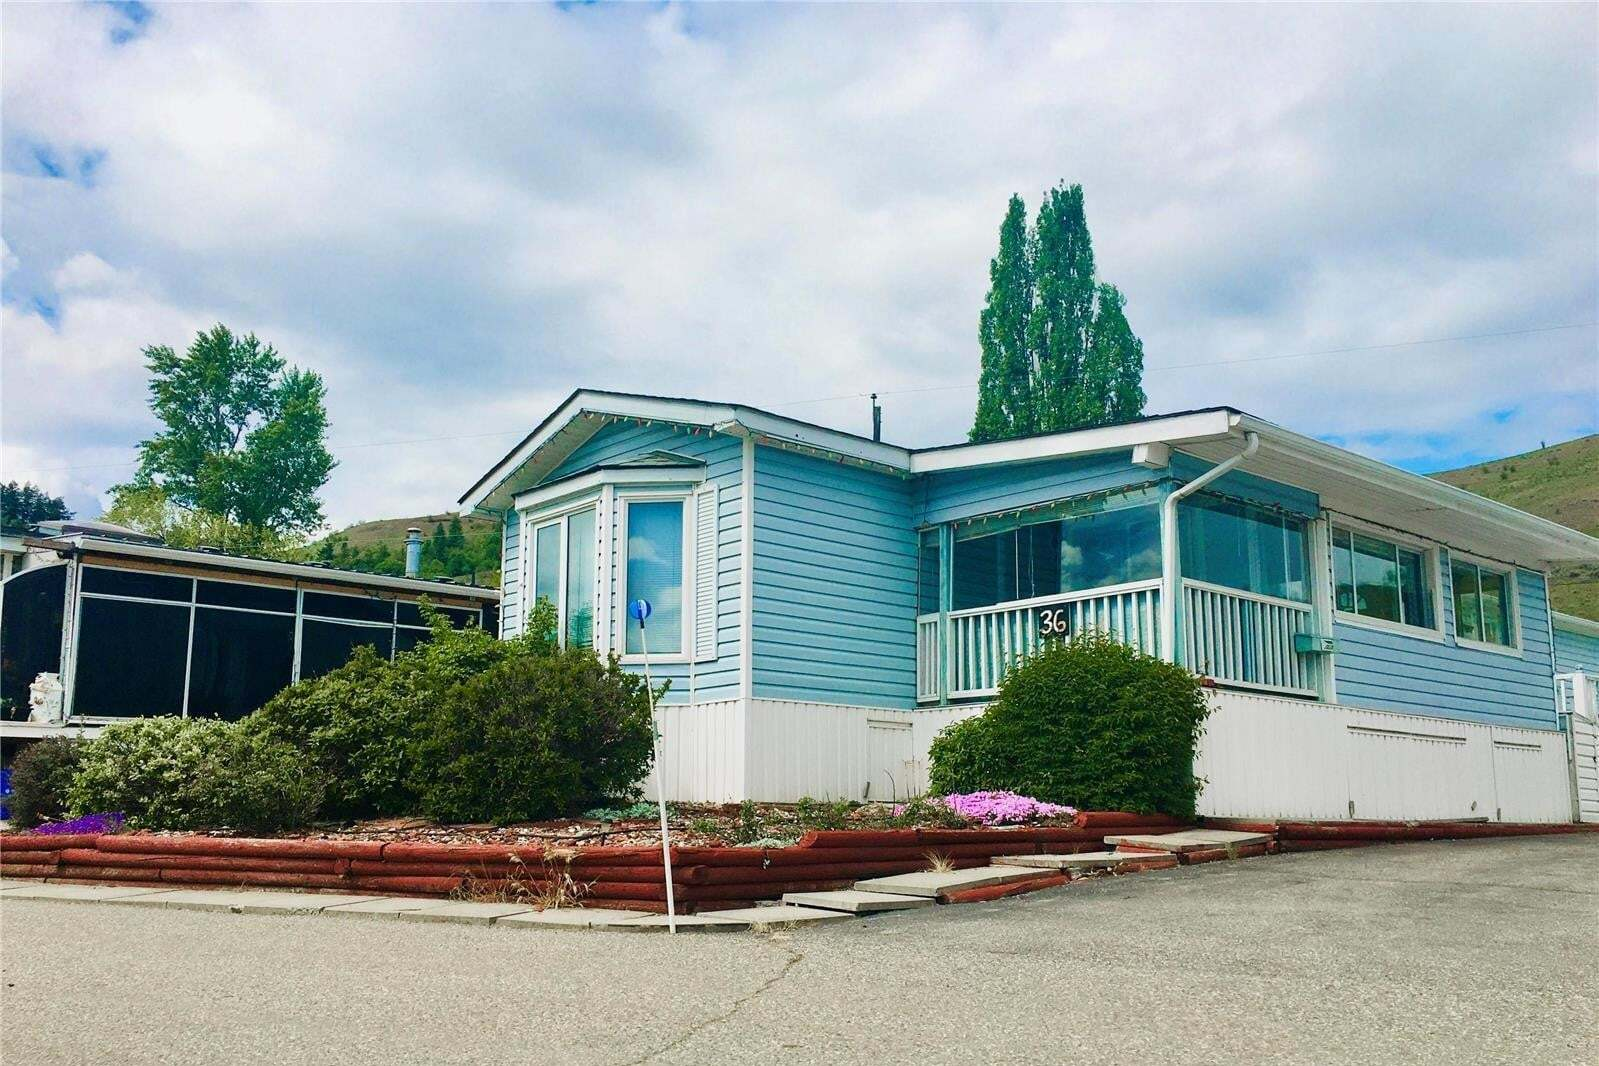 Home for sale at 8508 Clerke Rd Coldstream British Columbia - MLS: 10205317